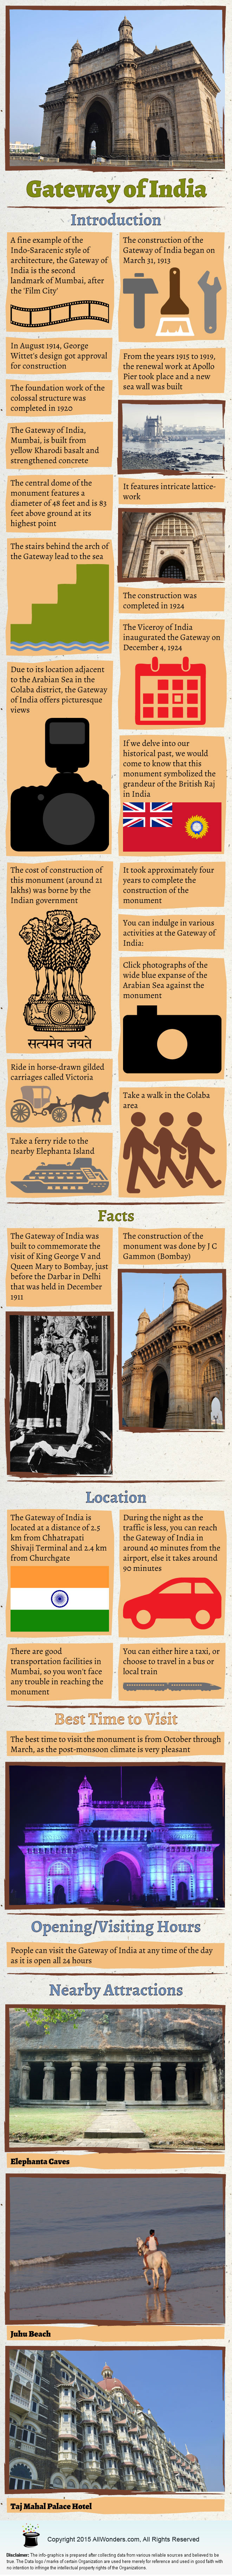 About Gateway of India - Infographic